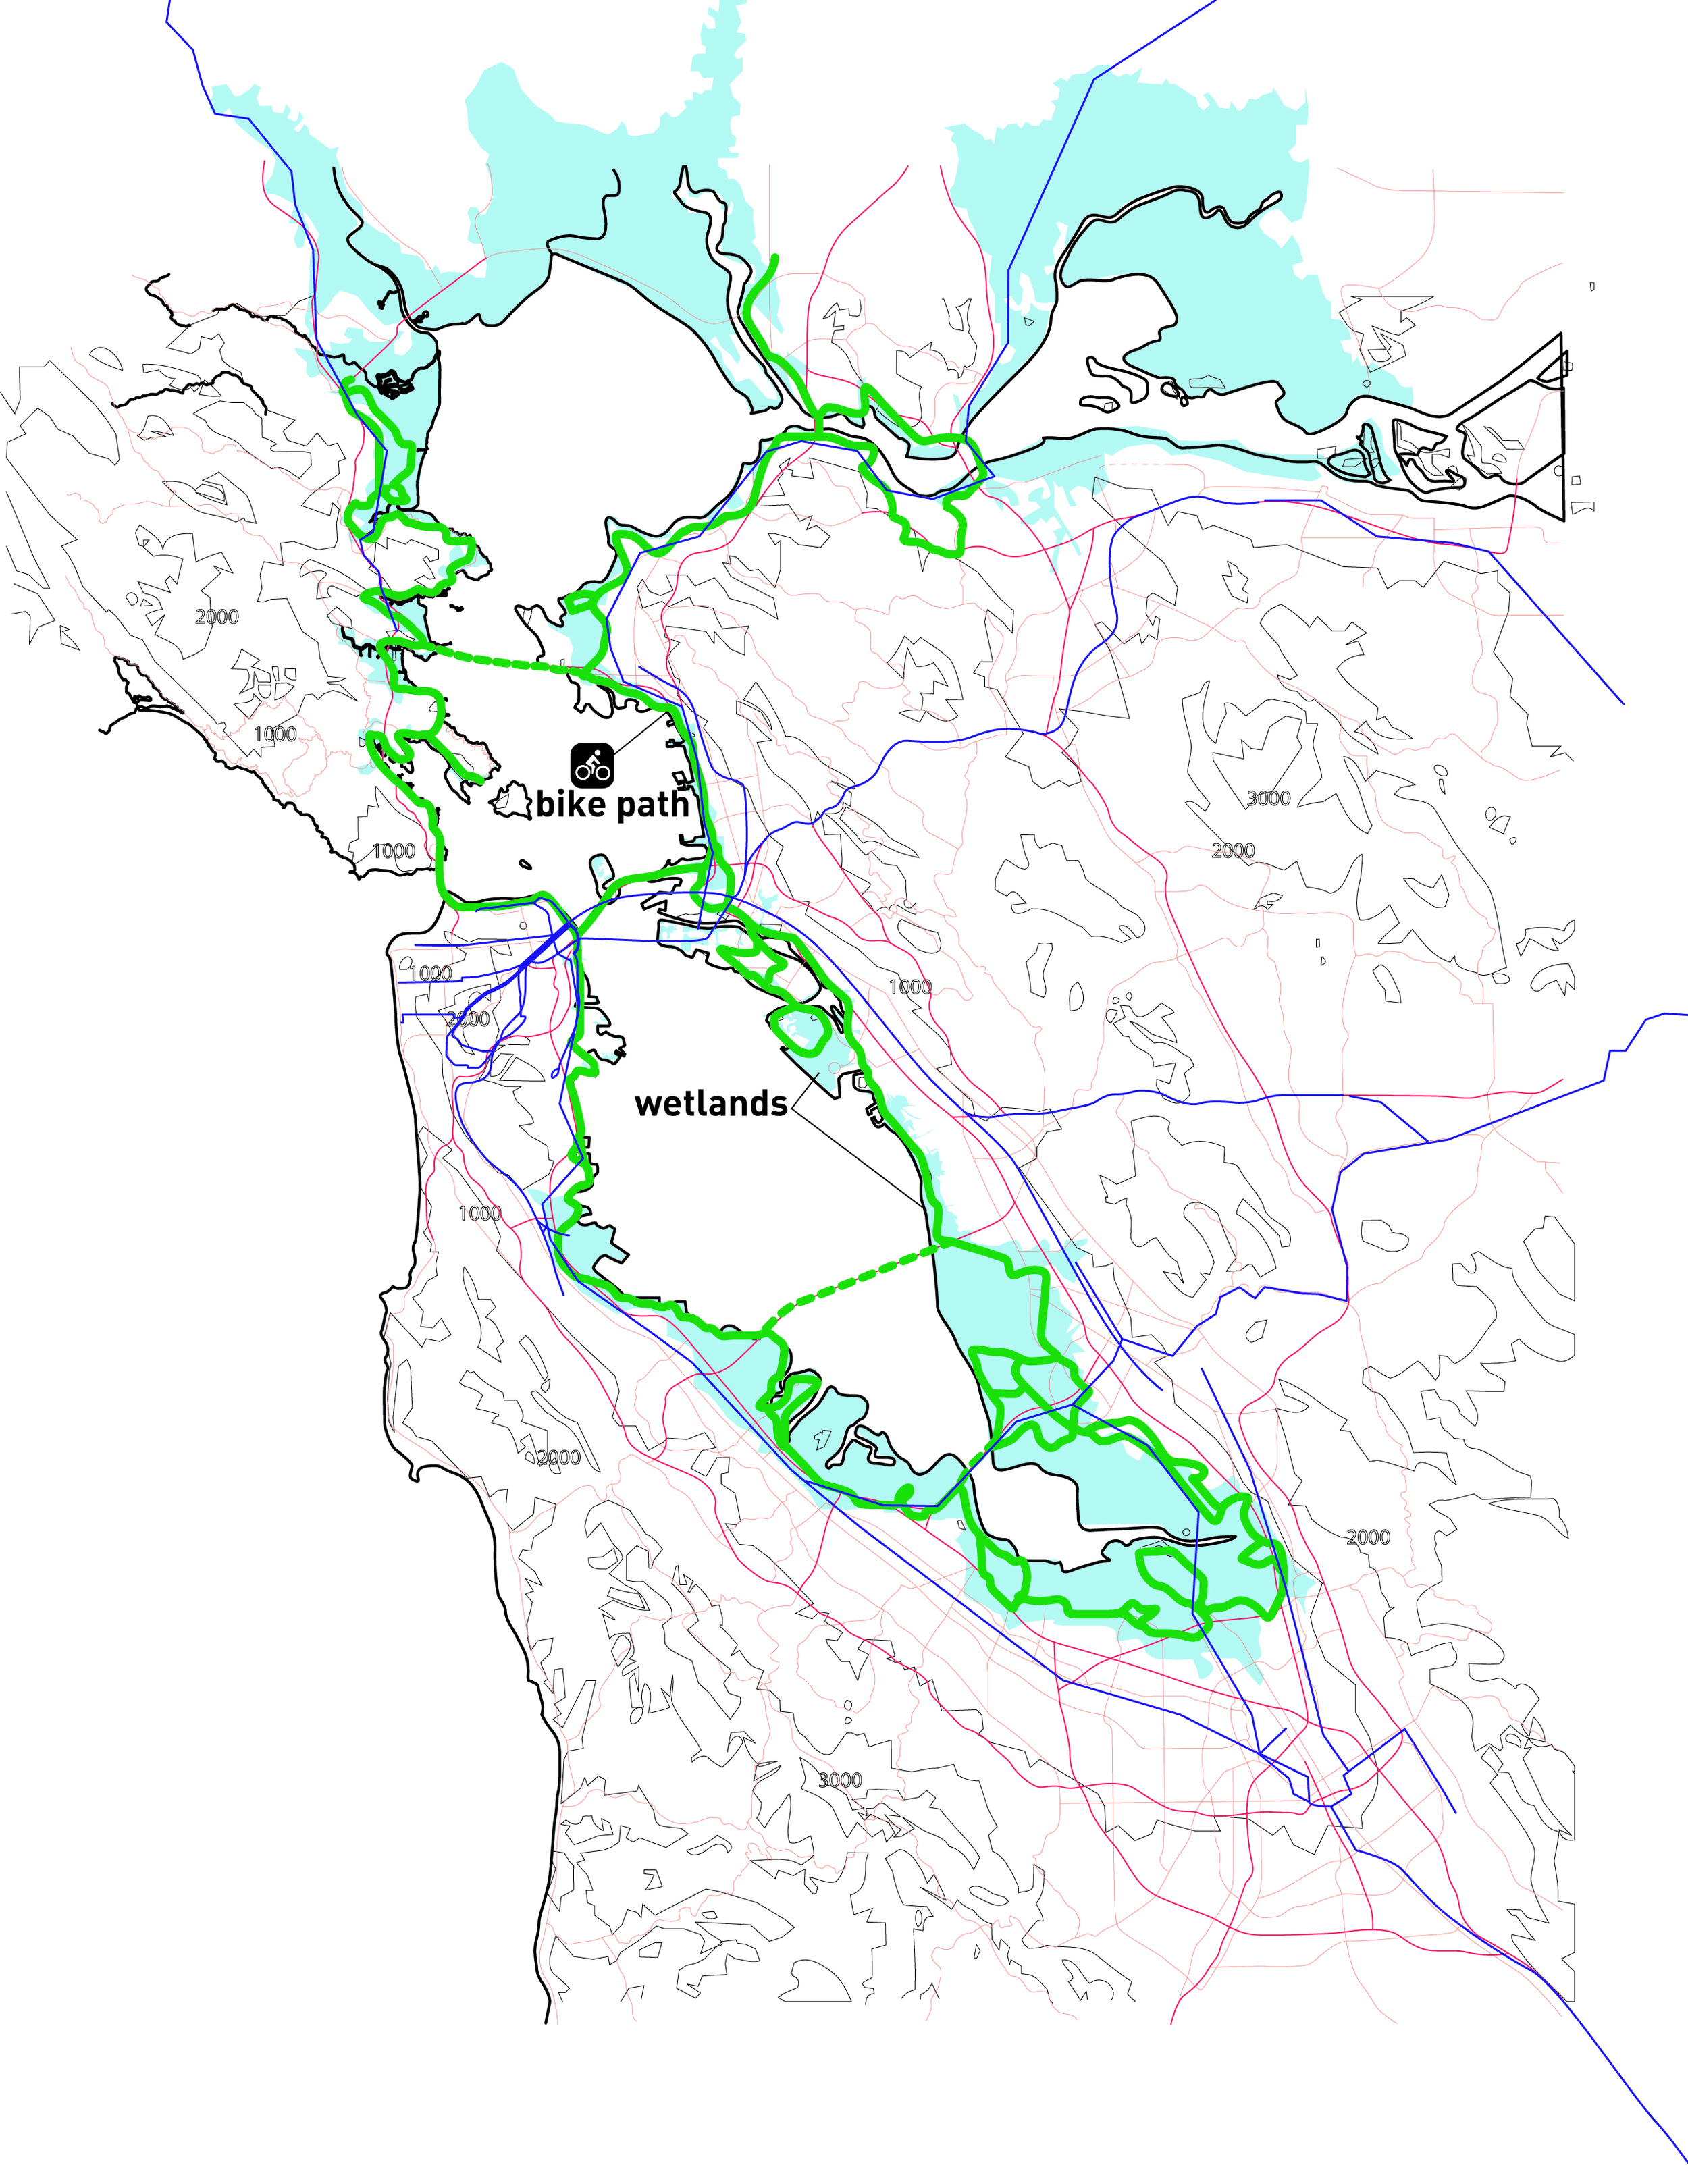 sfbay_overall map-bike_constructed wetlands copy.jpg